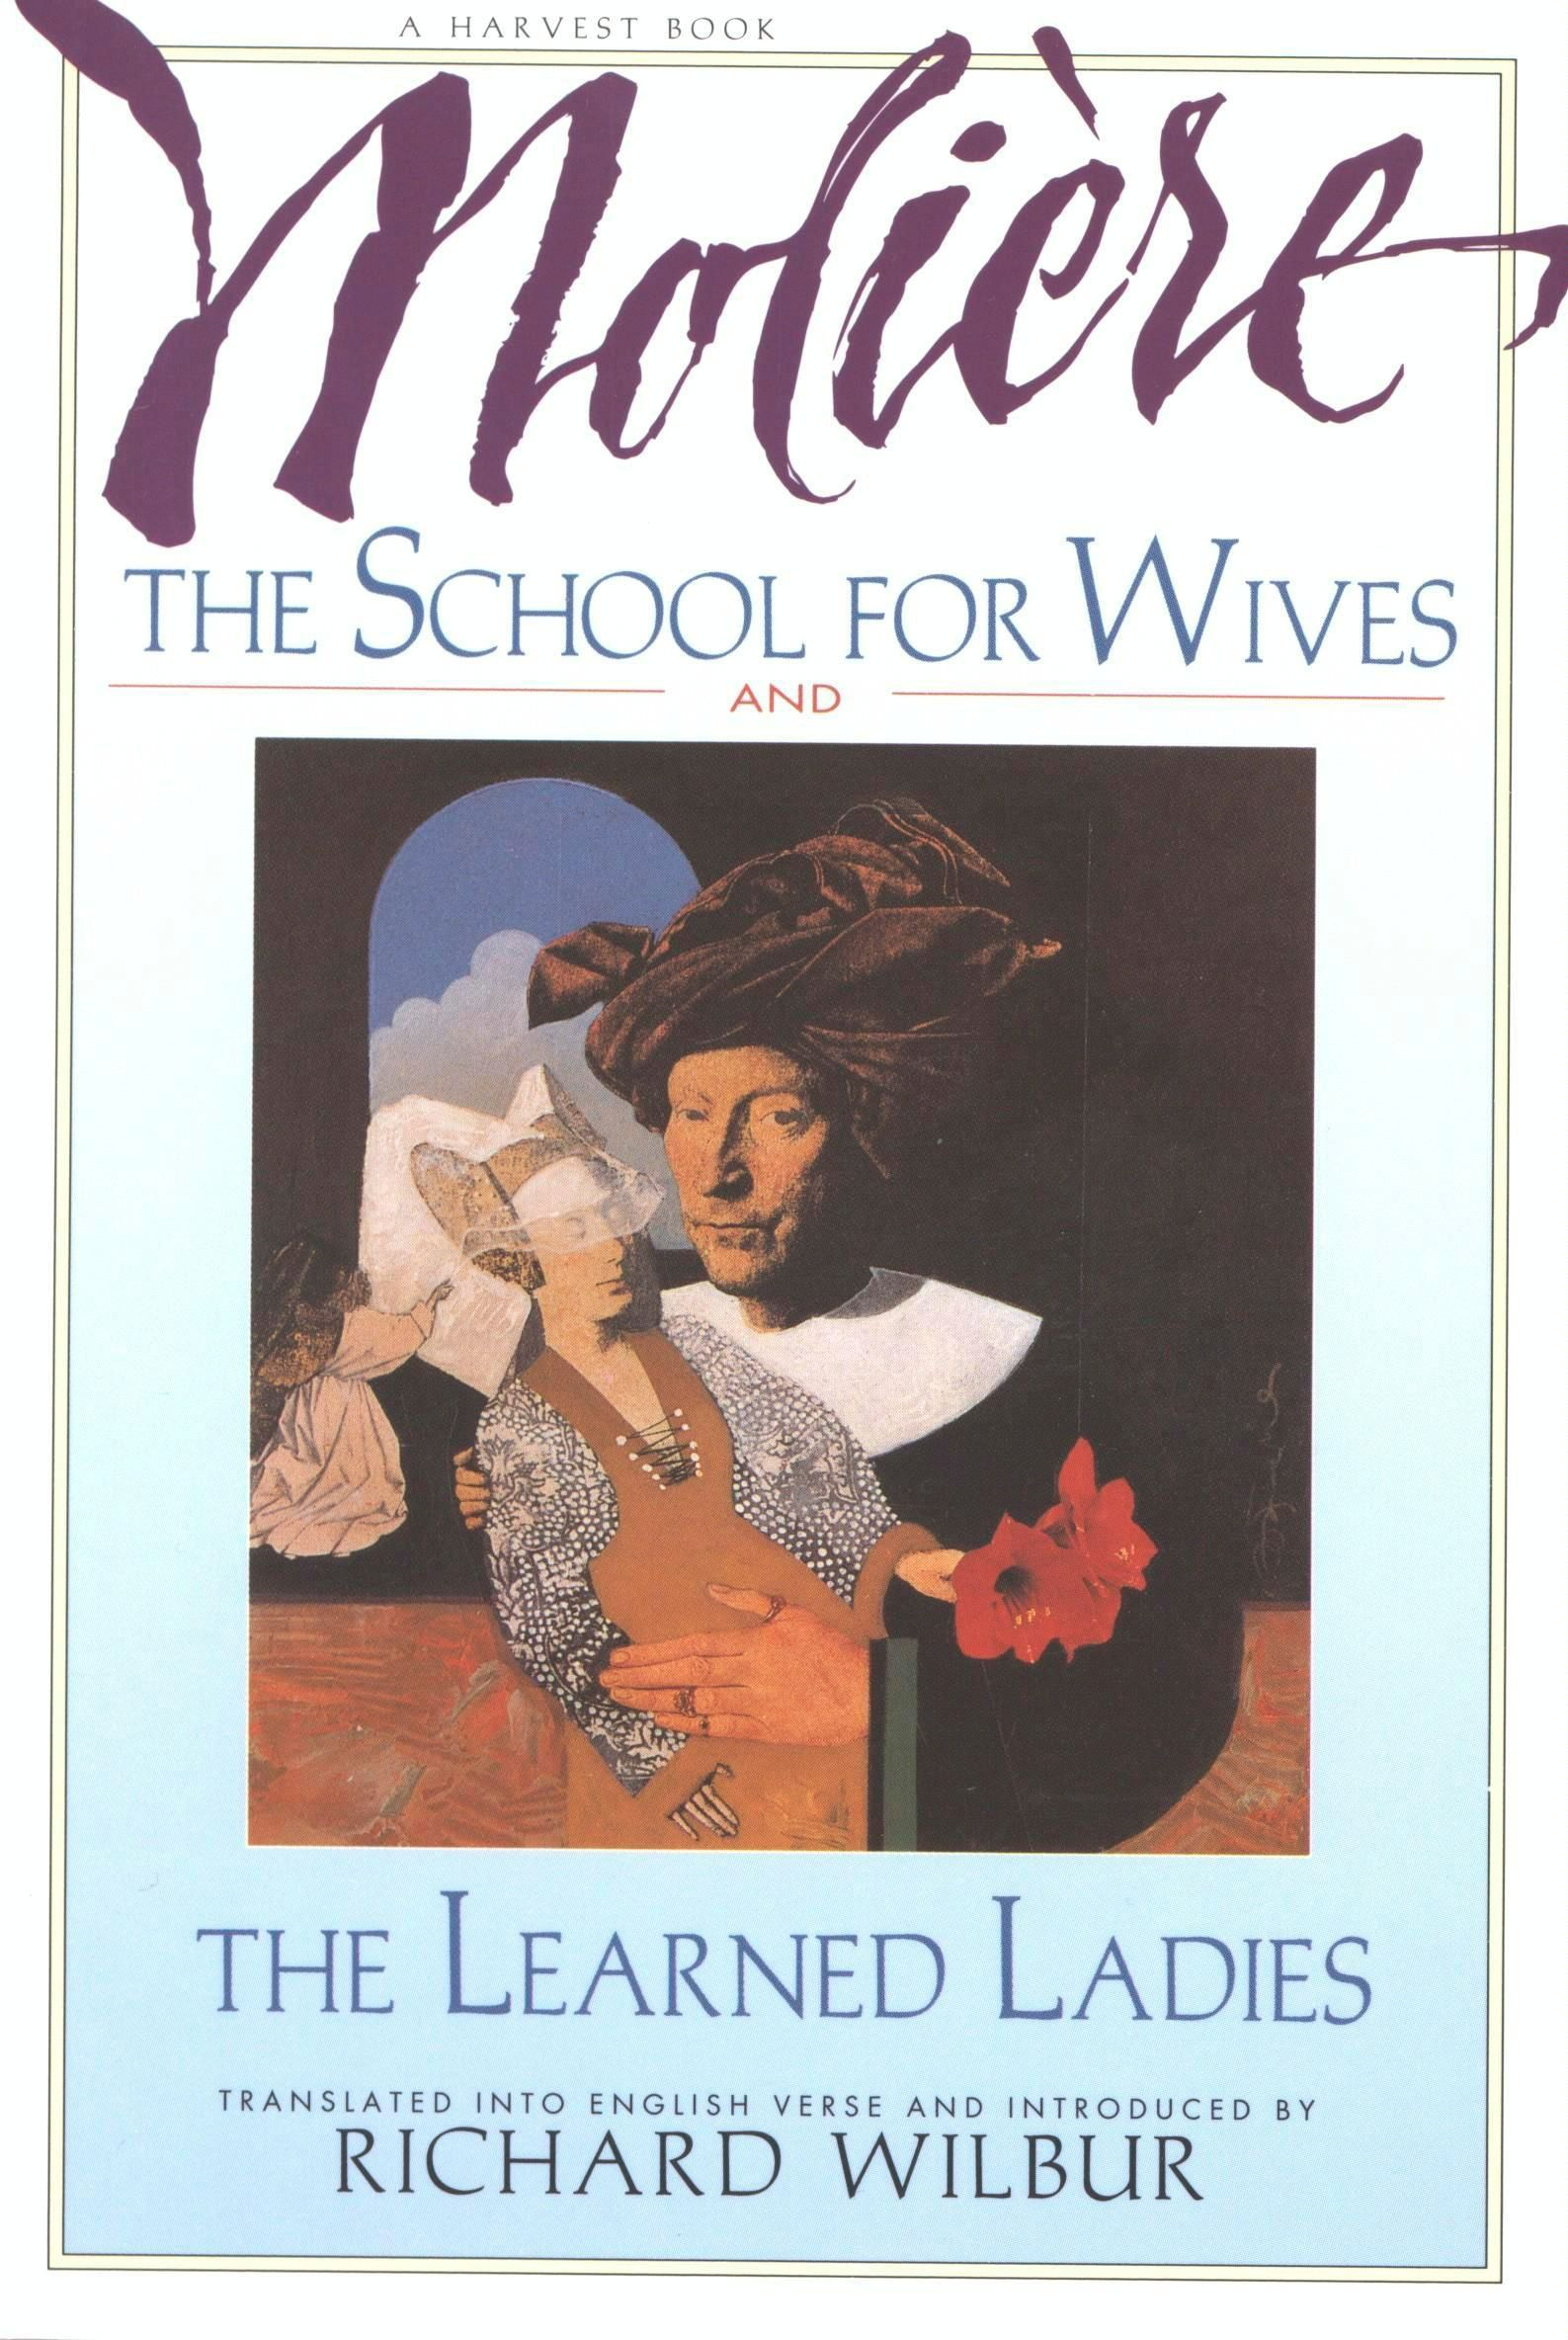 The School for Wives and The Learned Ladies, by Moliere